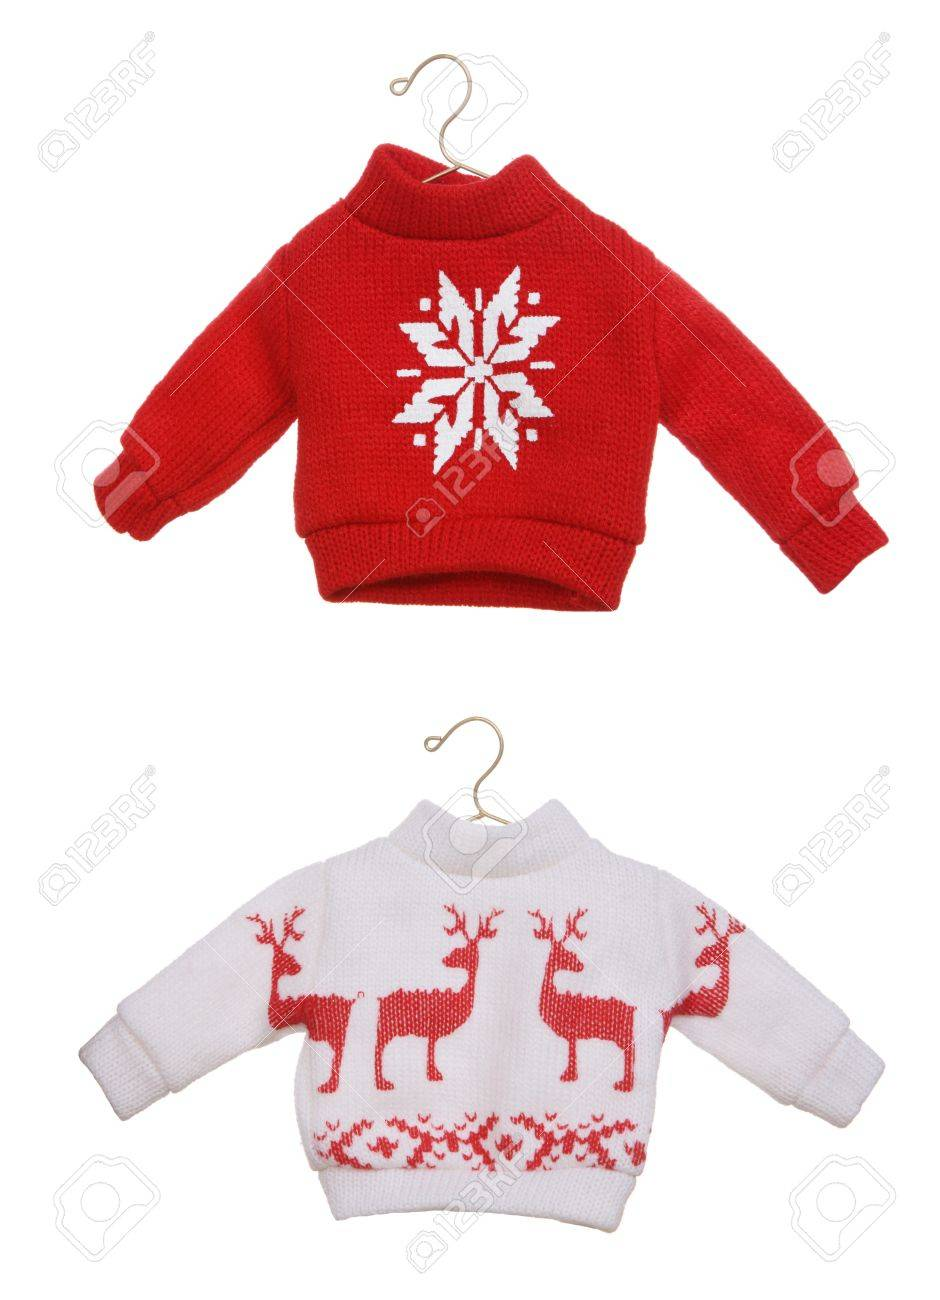 Christmas Sweaters Cute.Two Cute Christmas Sweaters Isolated Over White